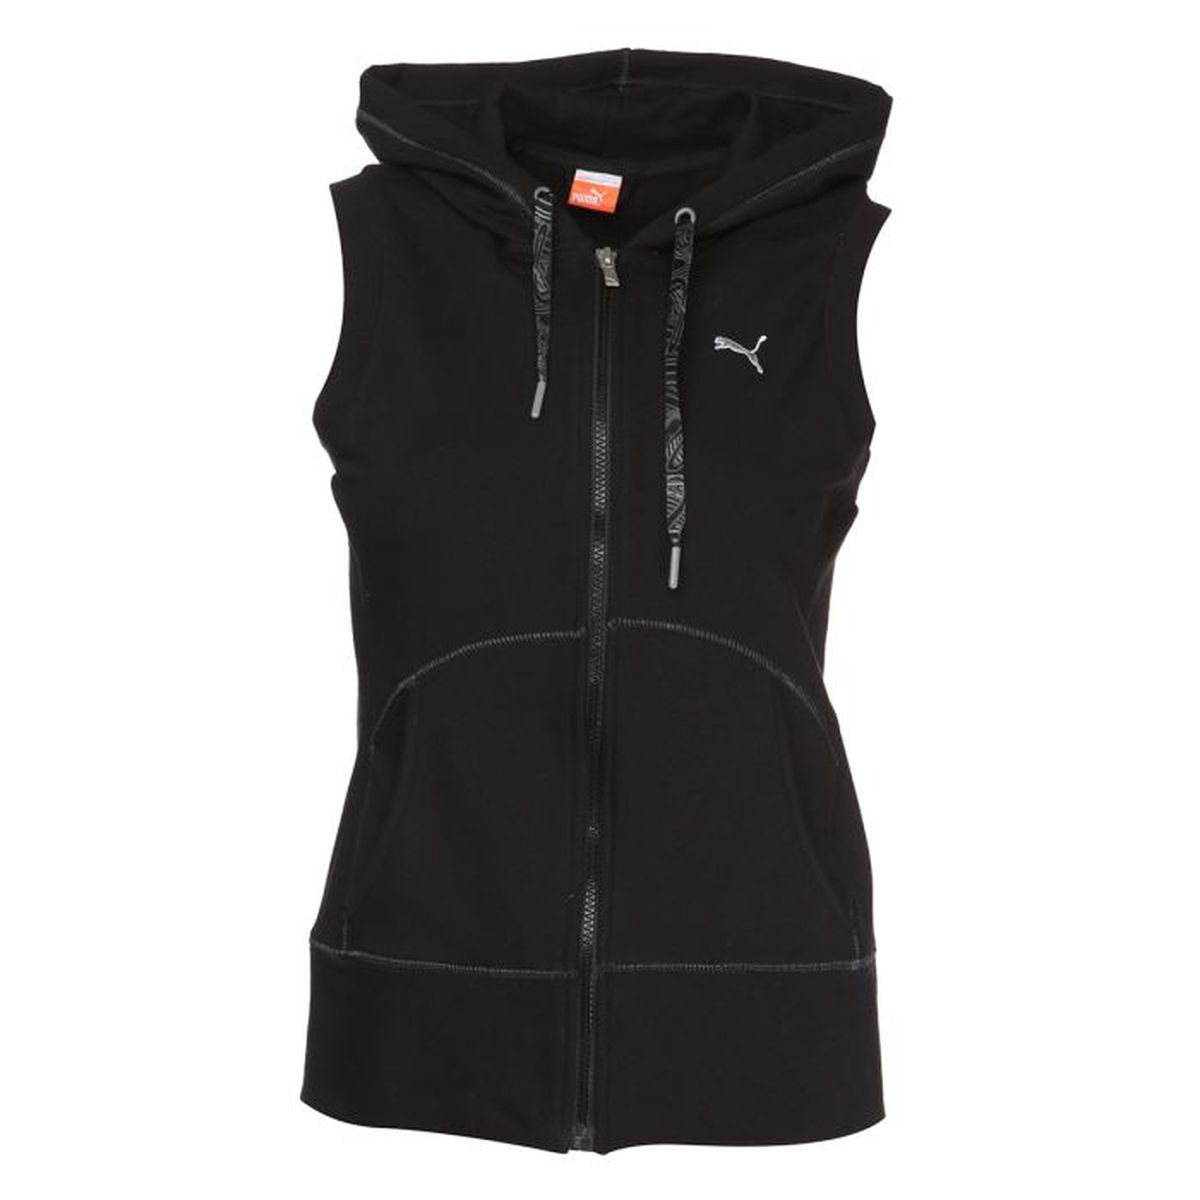 puma veste zipp e sans manches femme noir achat vente veste de sport cdiscount. Black Bedroom Furniture Sets. Home Design Ideas